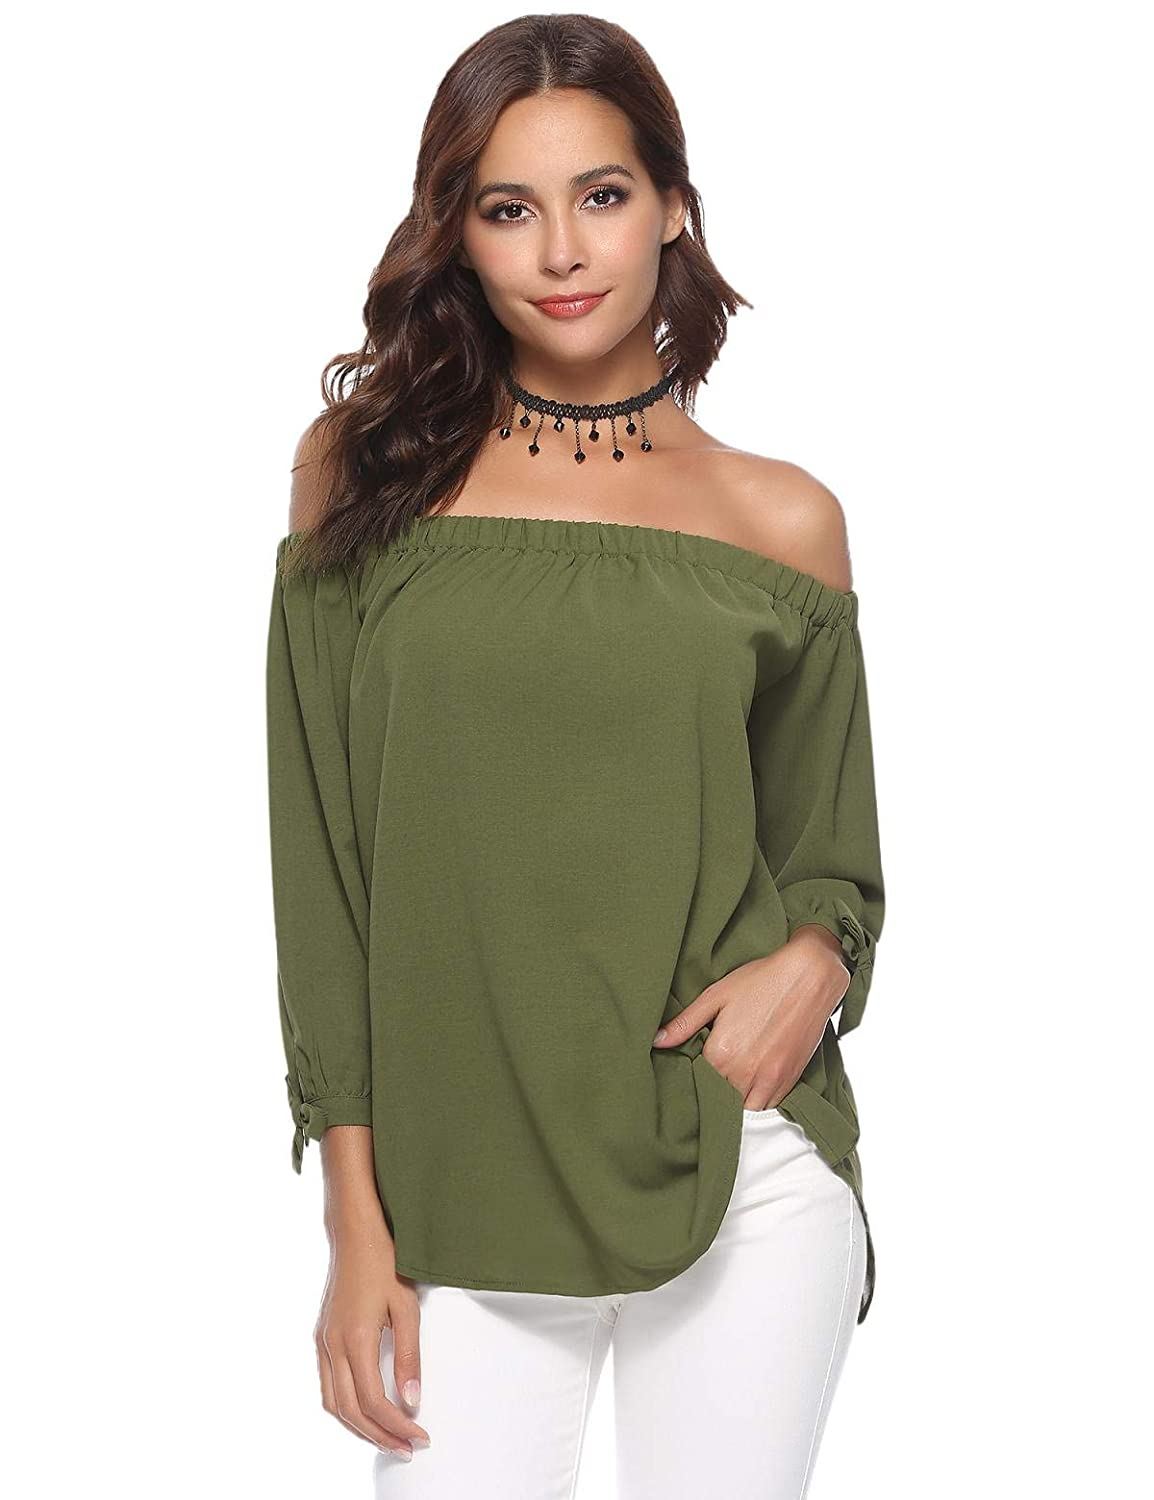 a6e90df9b00 Aibrou Off Shoulder Tops for Women 3/4 Sleeve Elegant Shirts Blouses at  Amazon Women's Clothing store: